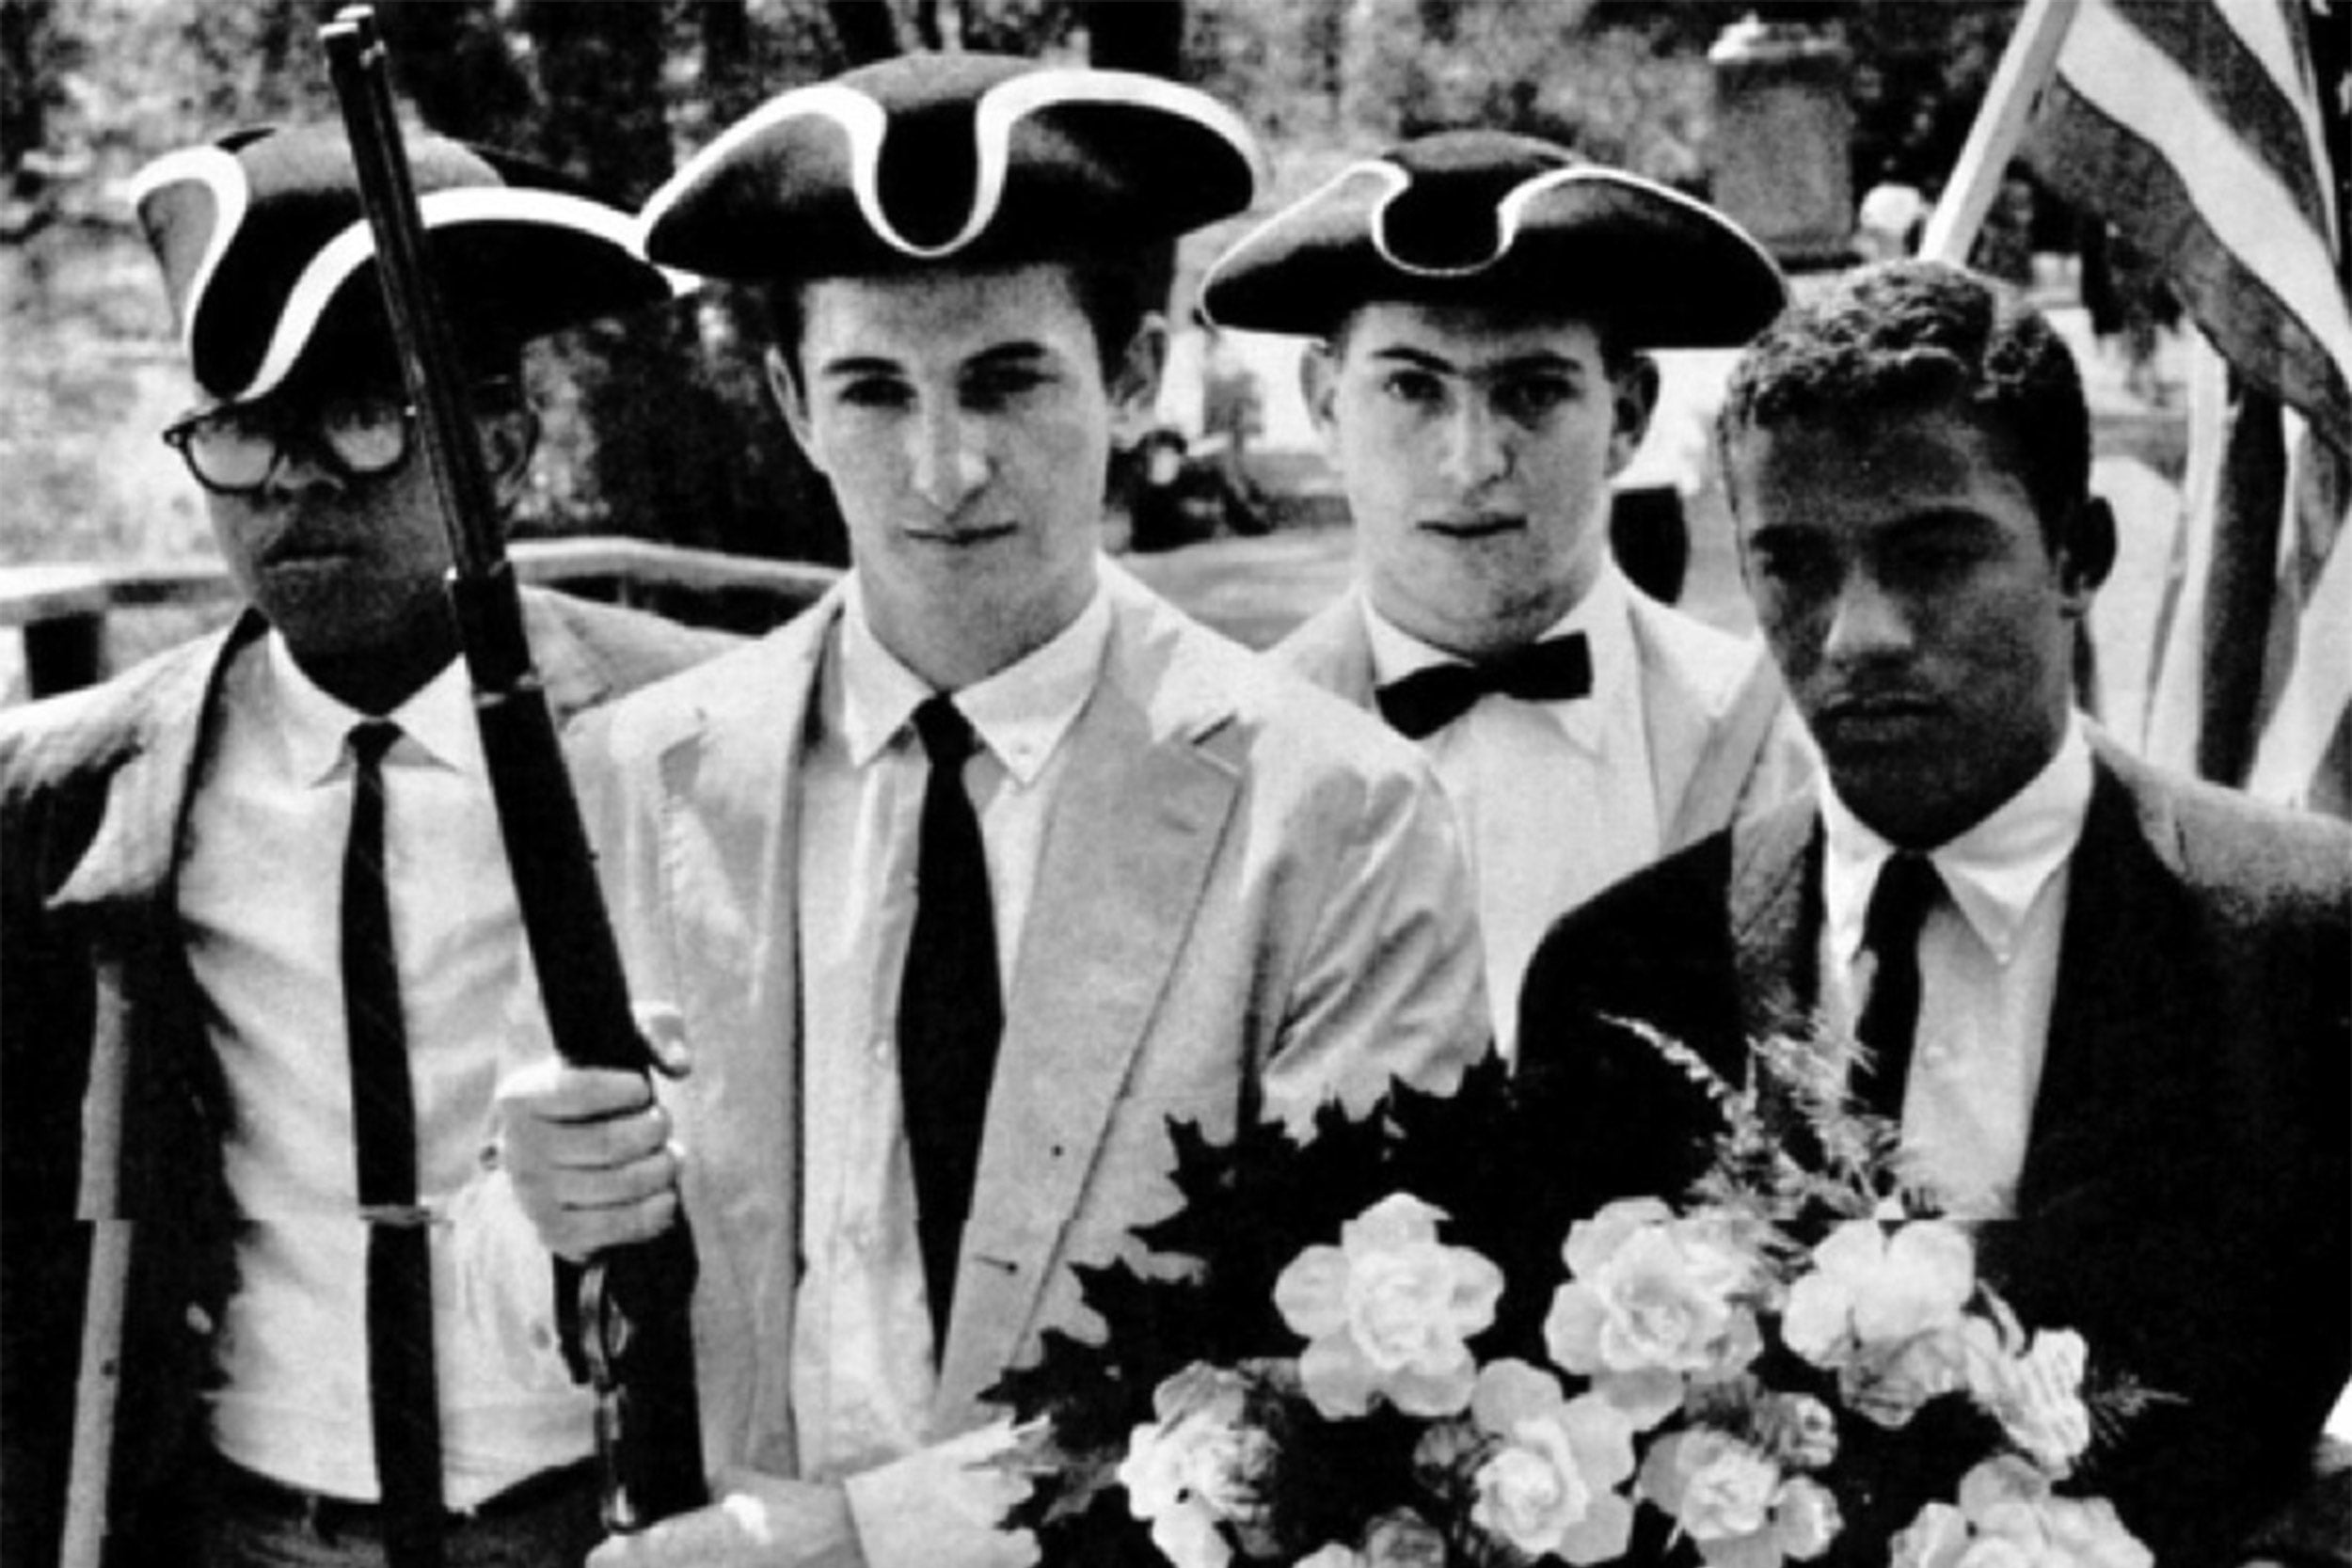 Black and white students as minutemen in 1960.